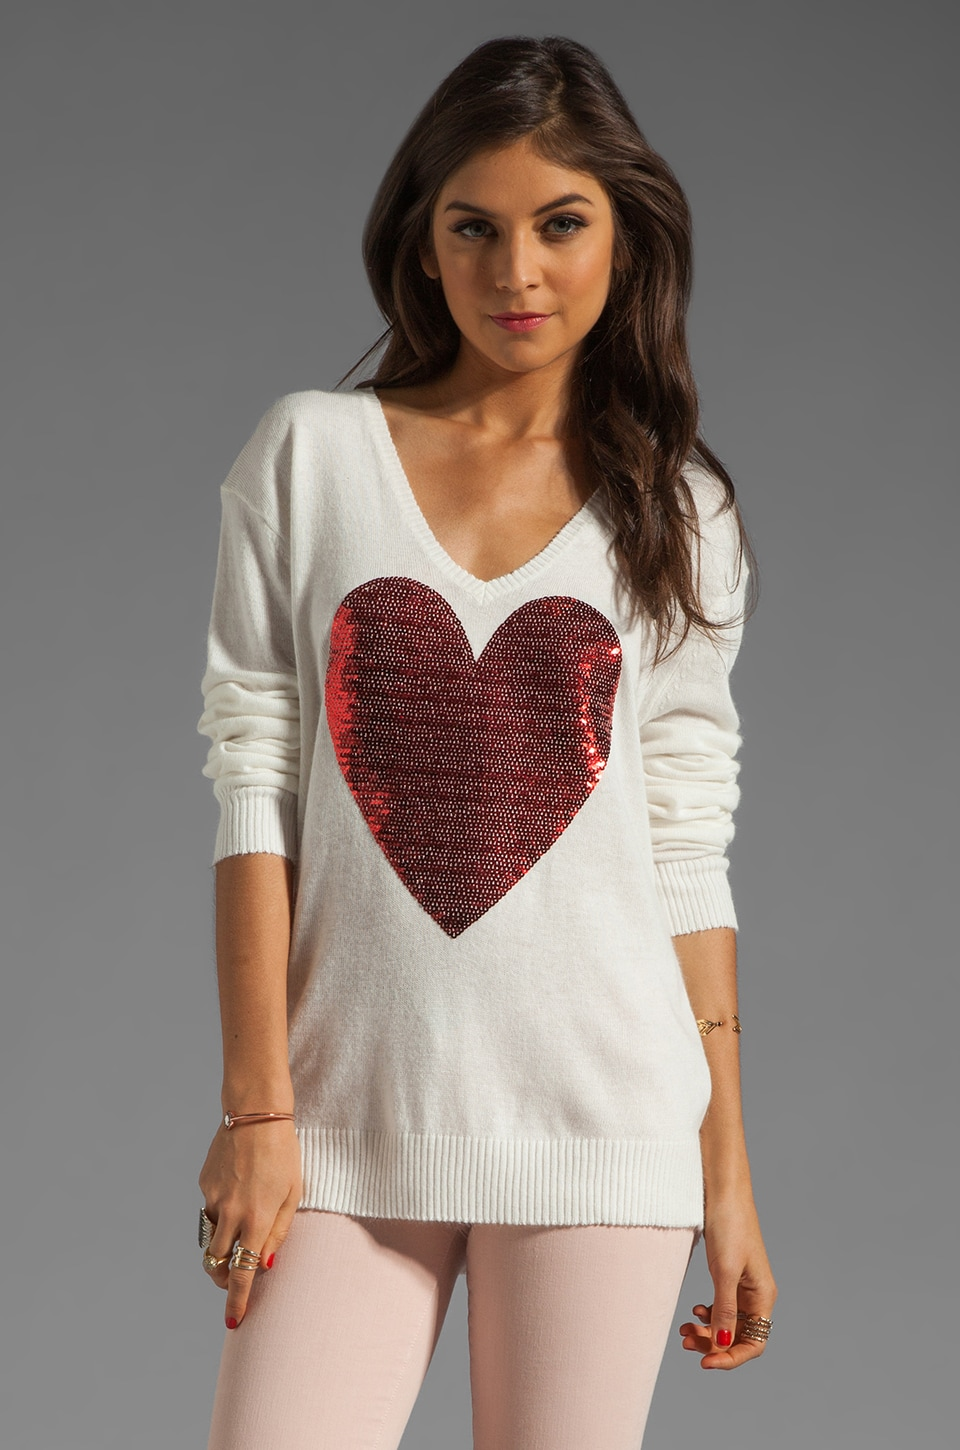 Wildfox Couture White Label Sequin Heart Sweater in Cream